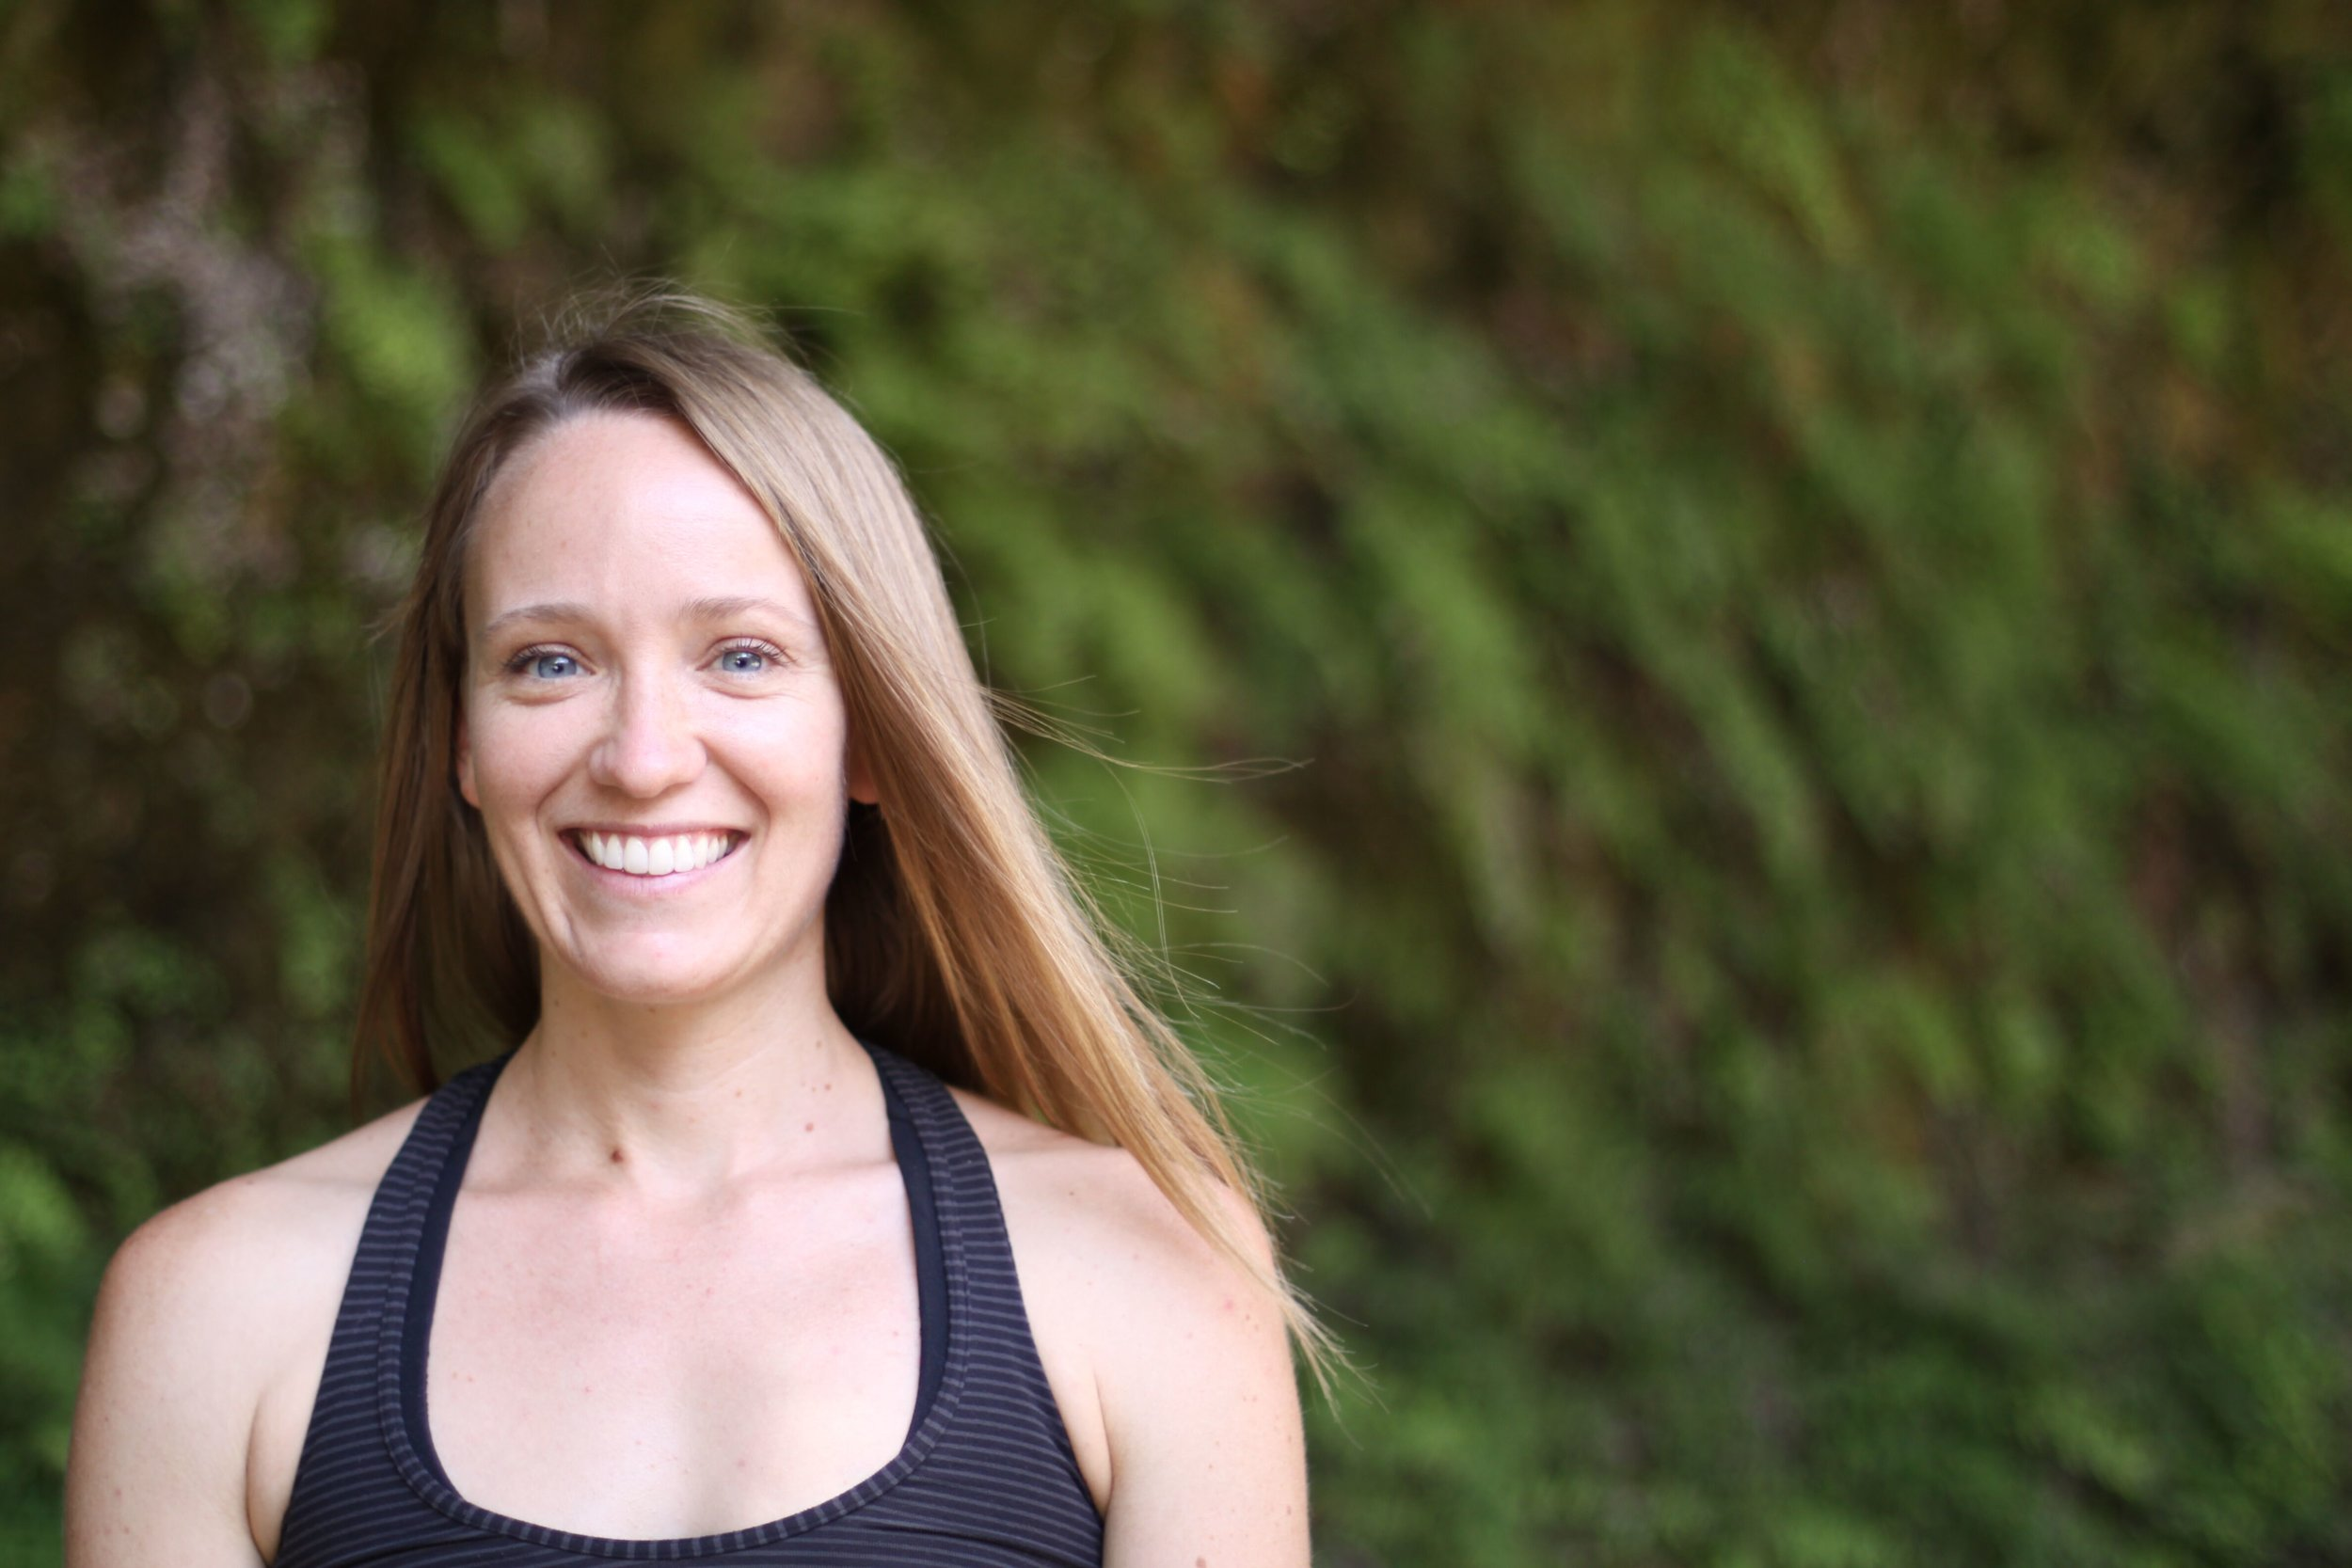 About Rachel - I began practicing yoga in 2007 and have been teaching yoga since 2009. As of 2019, I am a Certified Yoga Therapist with the International Association of Yoga Therapists, and I have specialized training in Pain Care Yoga, as well as Trauma-Informed Yoga Therapy.